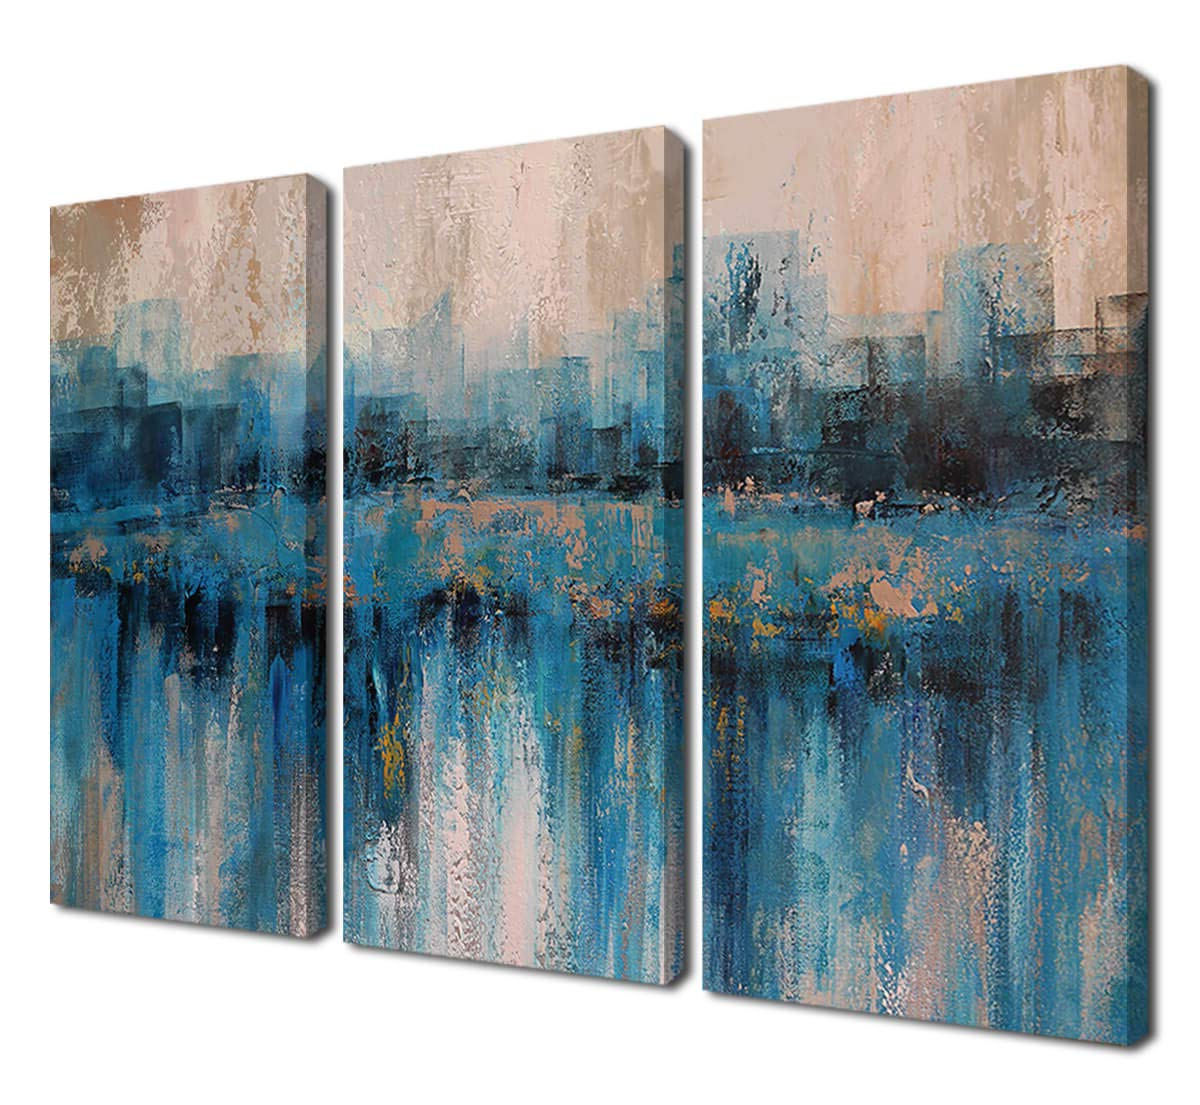 Fashionable Abstract Bar And Panel Wall Decor For Amazon: Canvas Wall Art Prints Abstract Textured Cityscape (View 10 of 20)